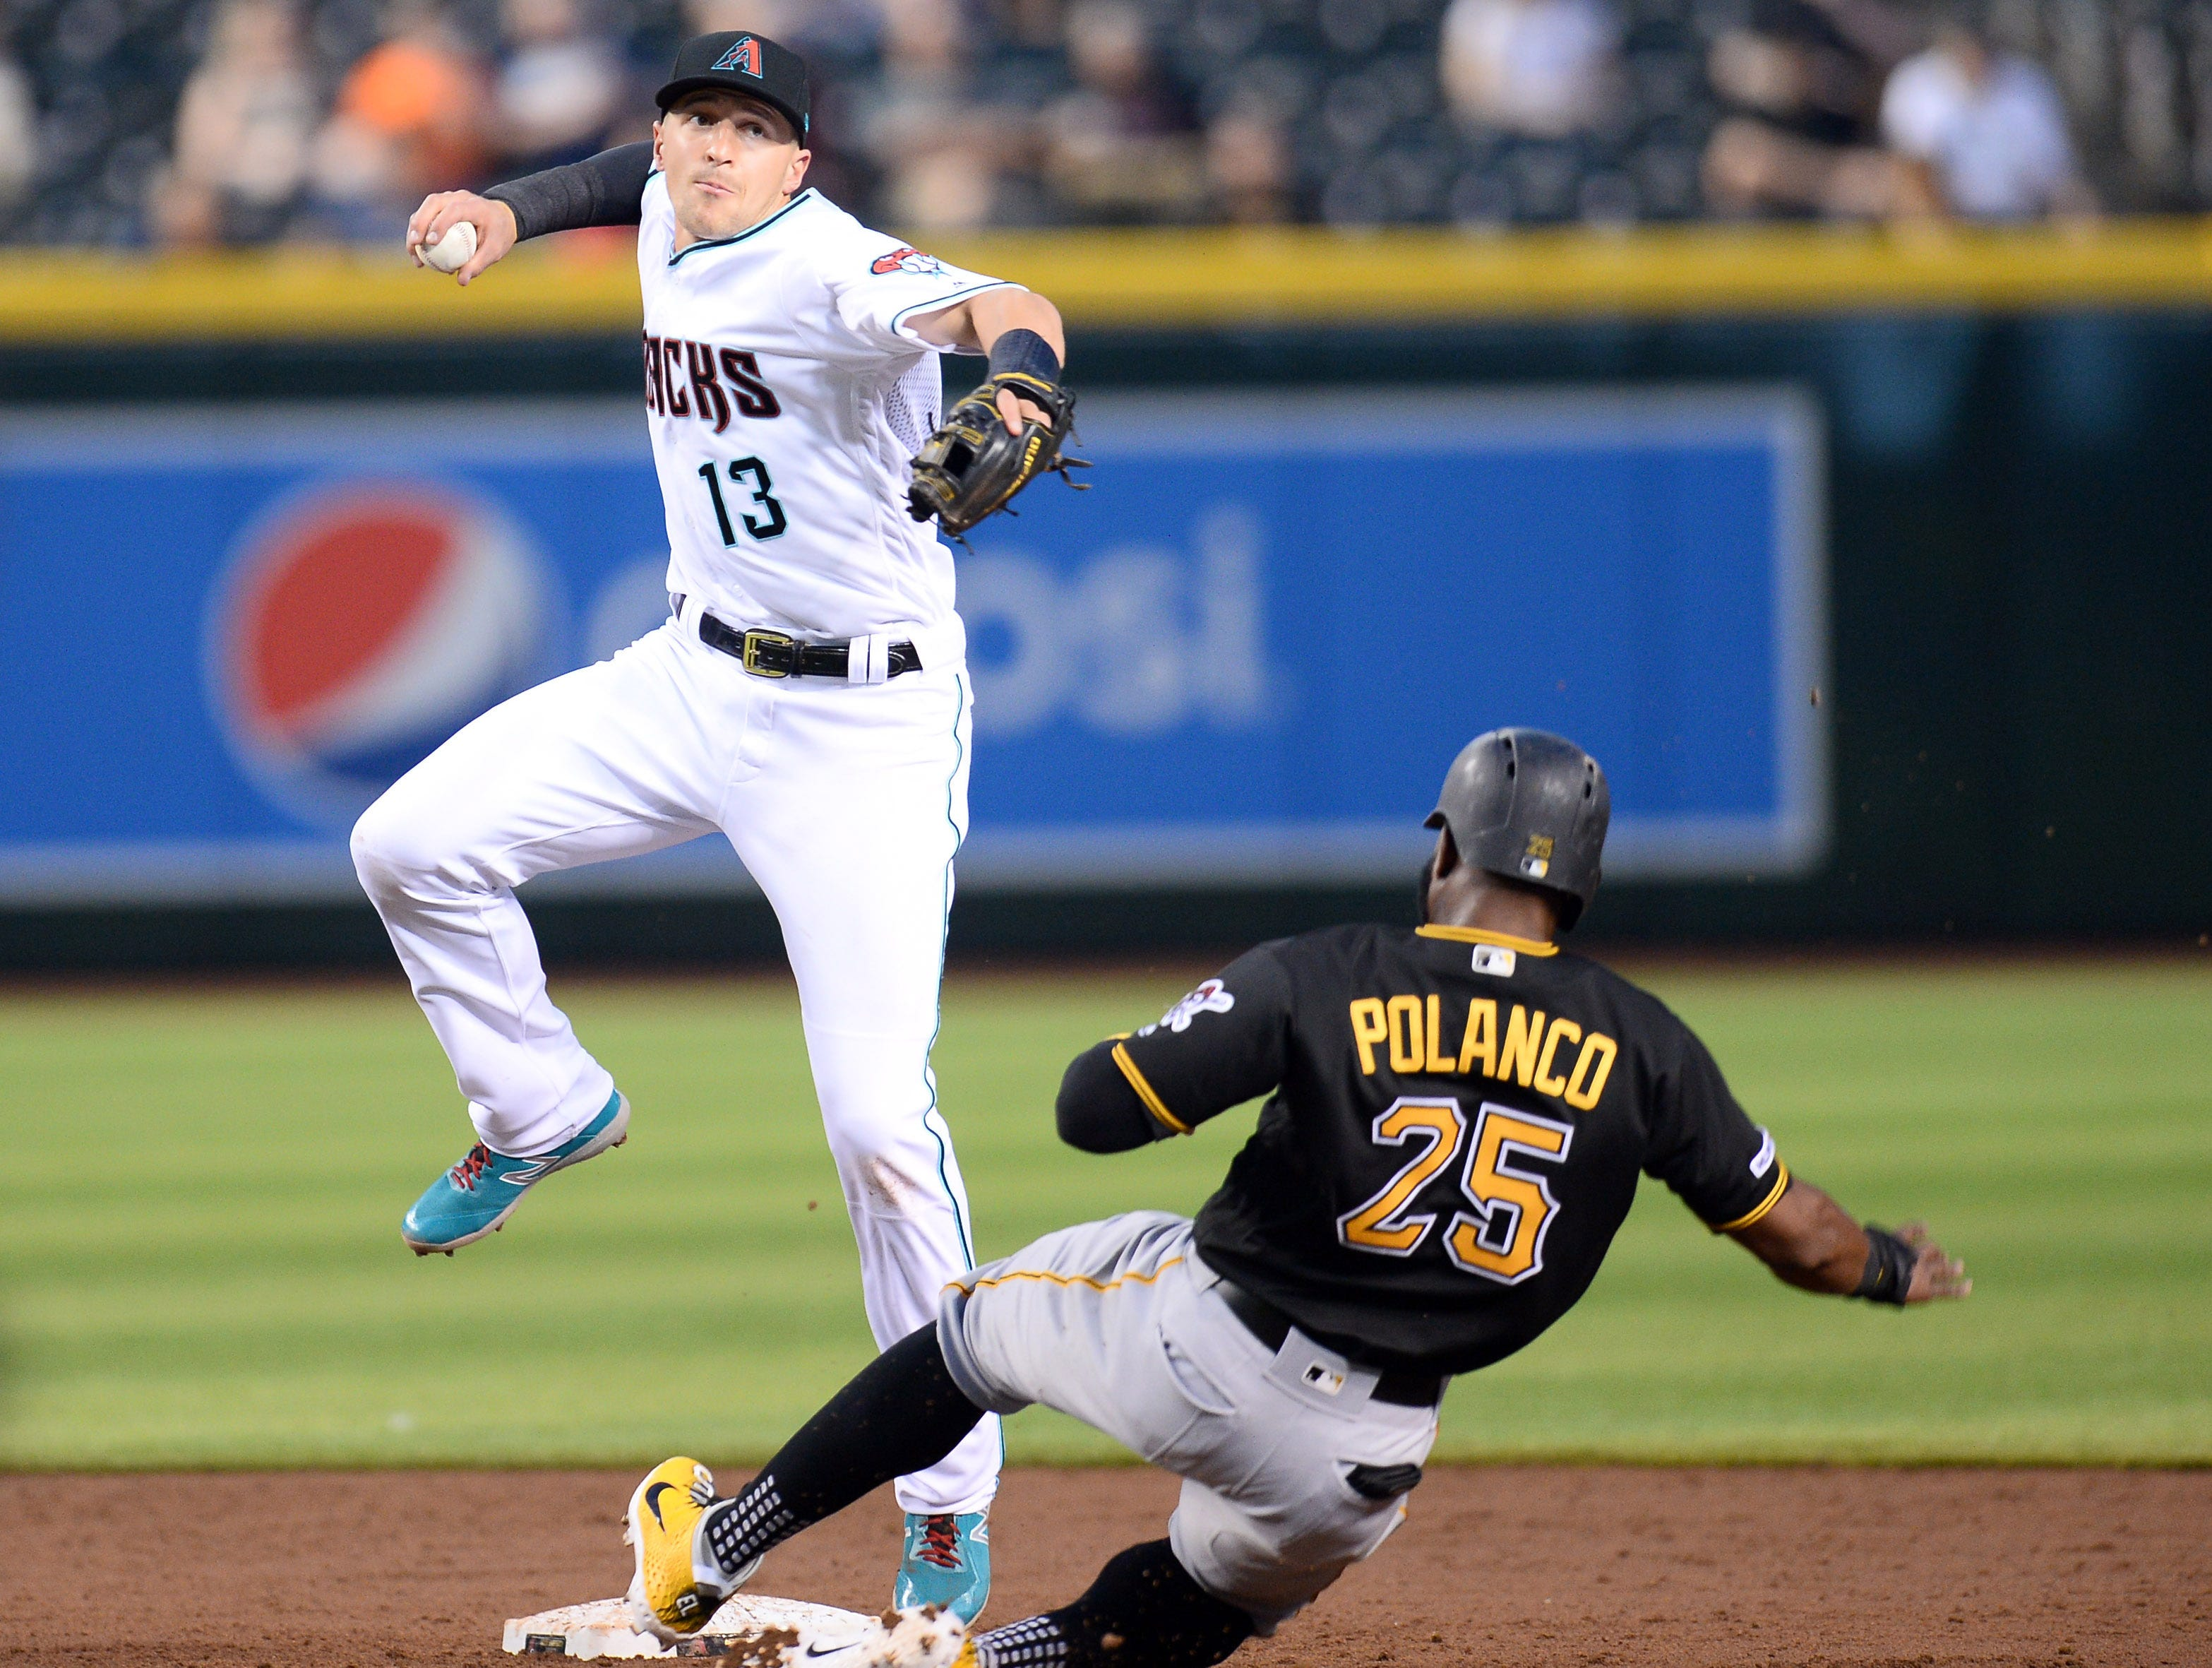 May 14, 2019; Phoenix, AZ, USA; Arizona Diamondbacks shortstop Nick Ahmed (13) throws to first base after forcing out Pittsburgh Pirates right fielder Gregory Polanco (25) at second during the third inning at Chase Field. Mandatory Credit: Joe Camporeale-USA TODAY Sports